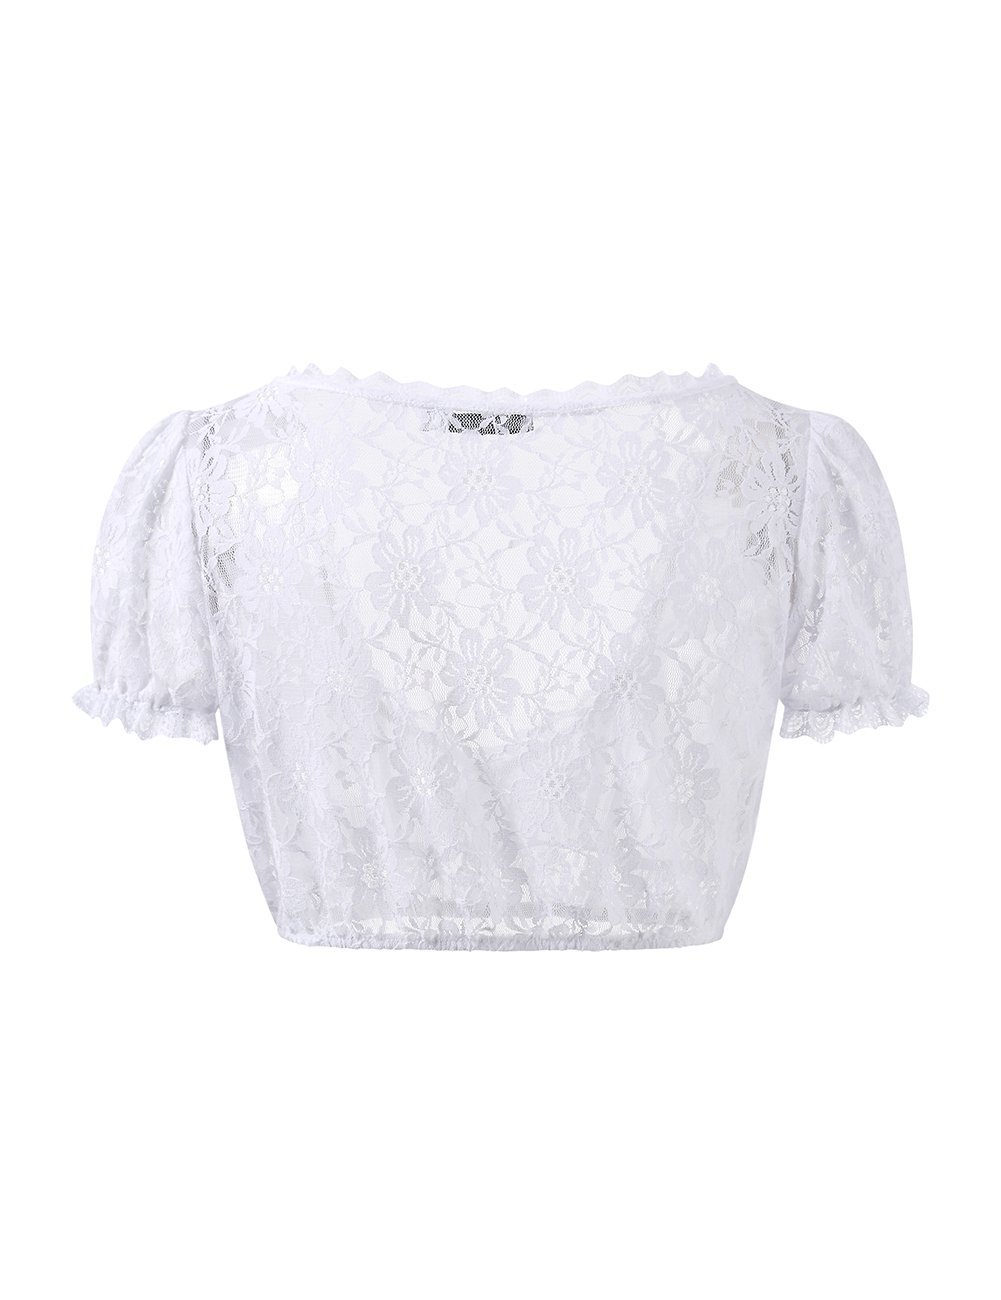 Leoie Women's Beer Festival Sexy See-Through Dirndl Solid Lace Chiffon Splicing Stylish Dirndl Top by Leoie (Image #4)